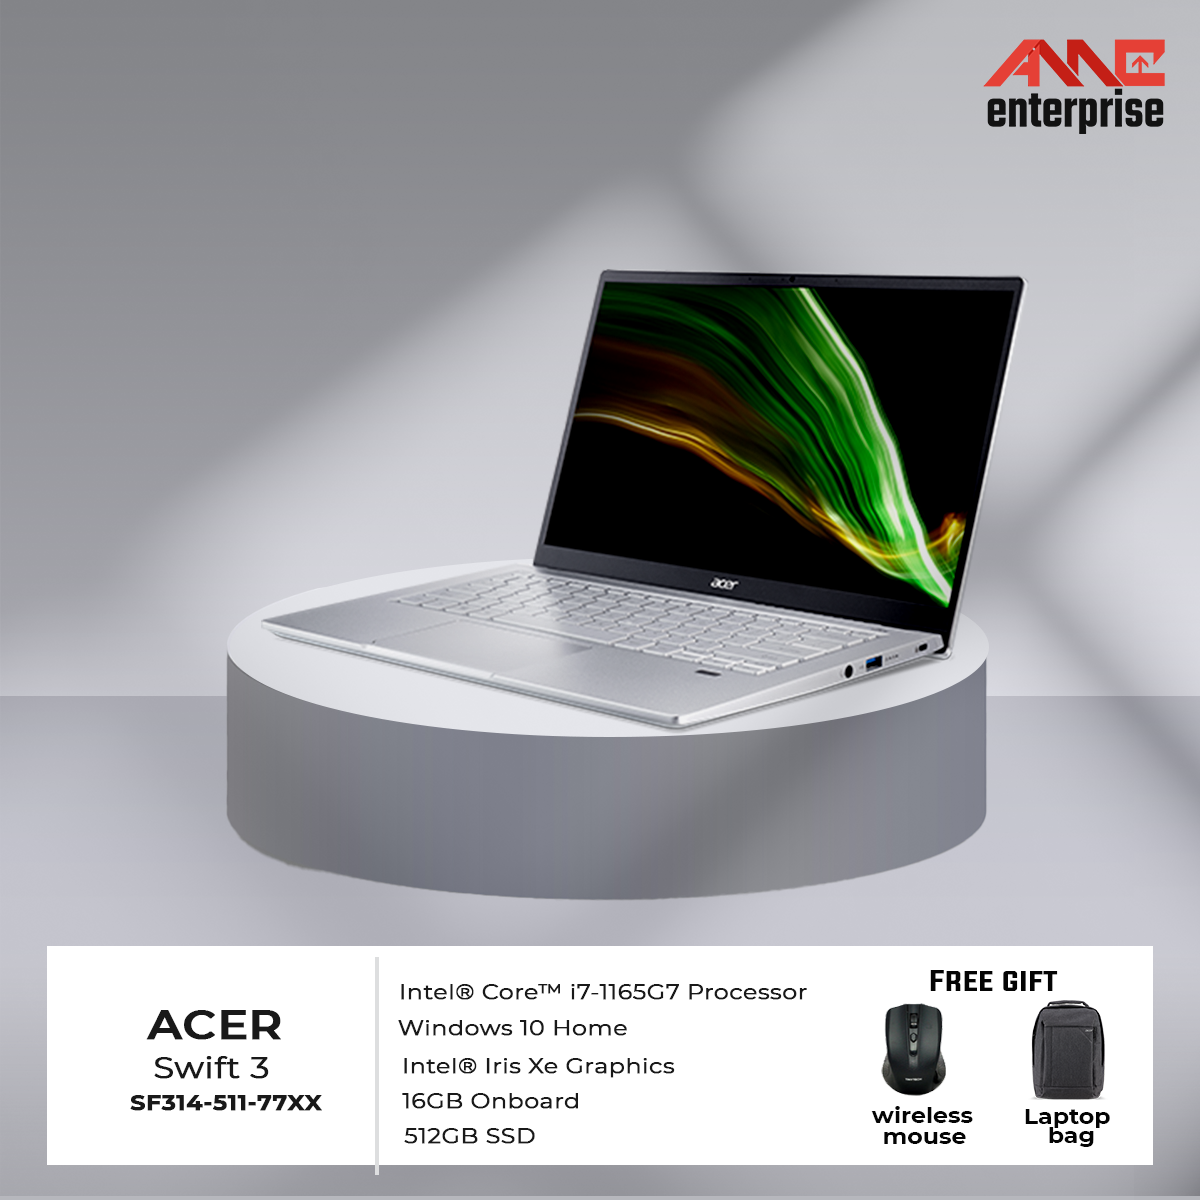 Acer Laptop Swift 3 (SF314-511-77XX) (3).png